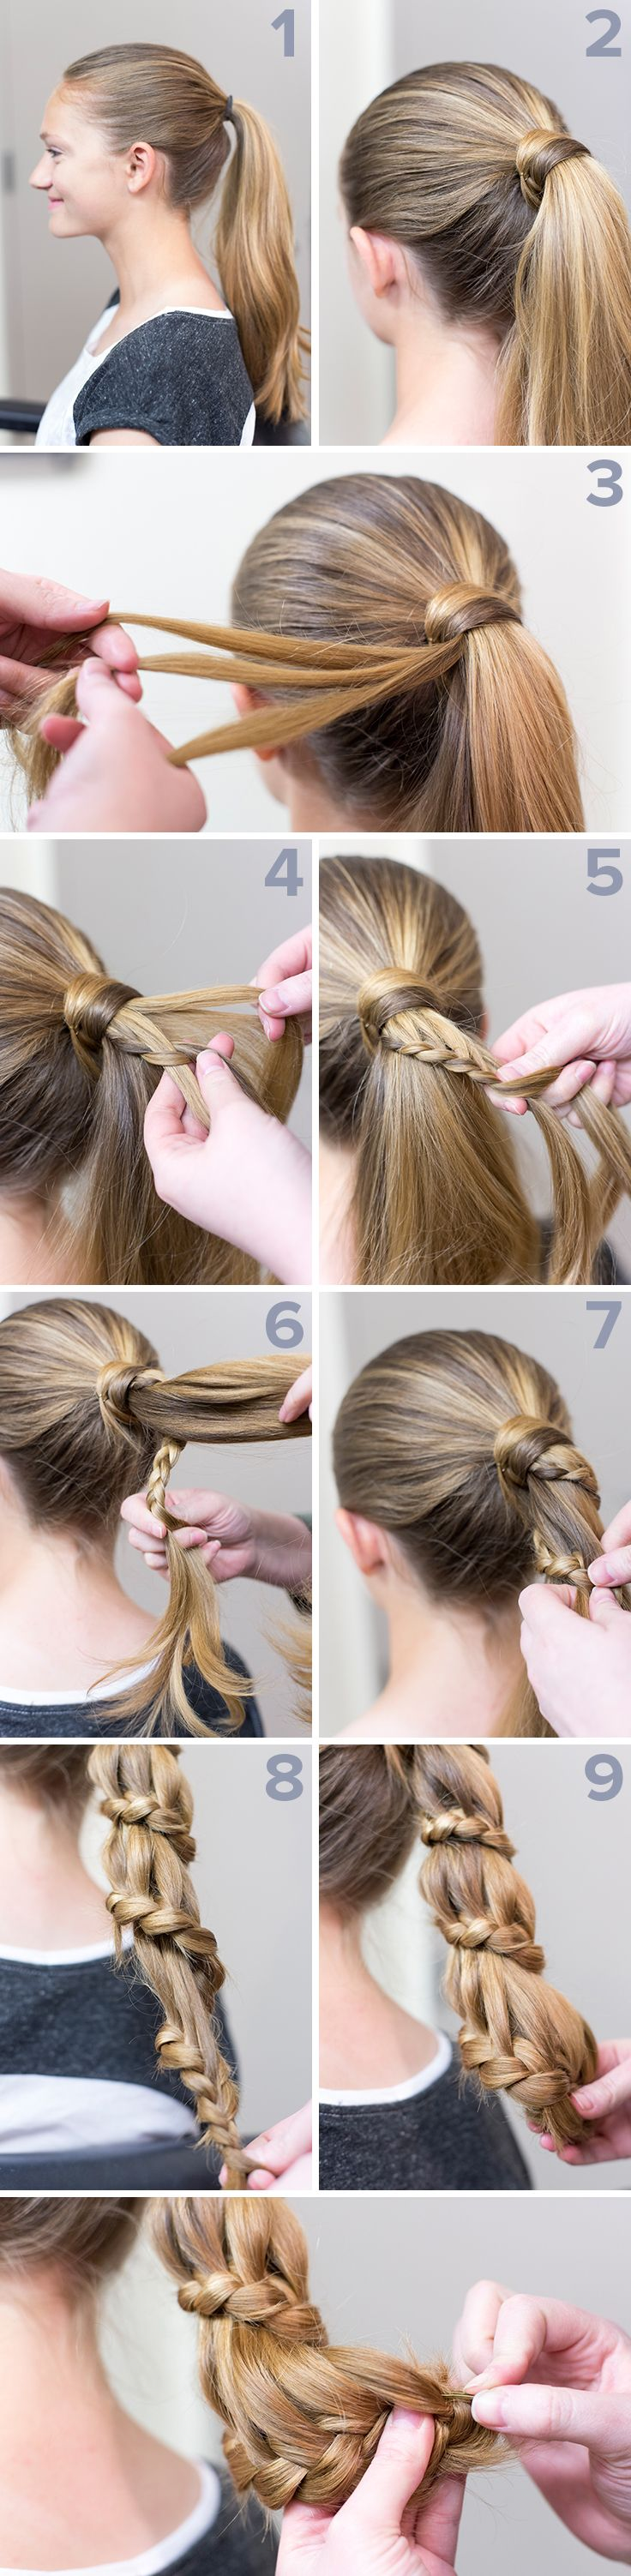 Get the look with this easy DIY: 8 steps for the perfect staircase ponytail braid. This everyday look is perfect for kids and teens.